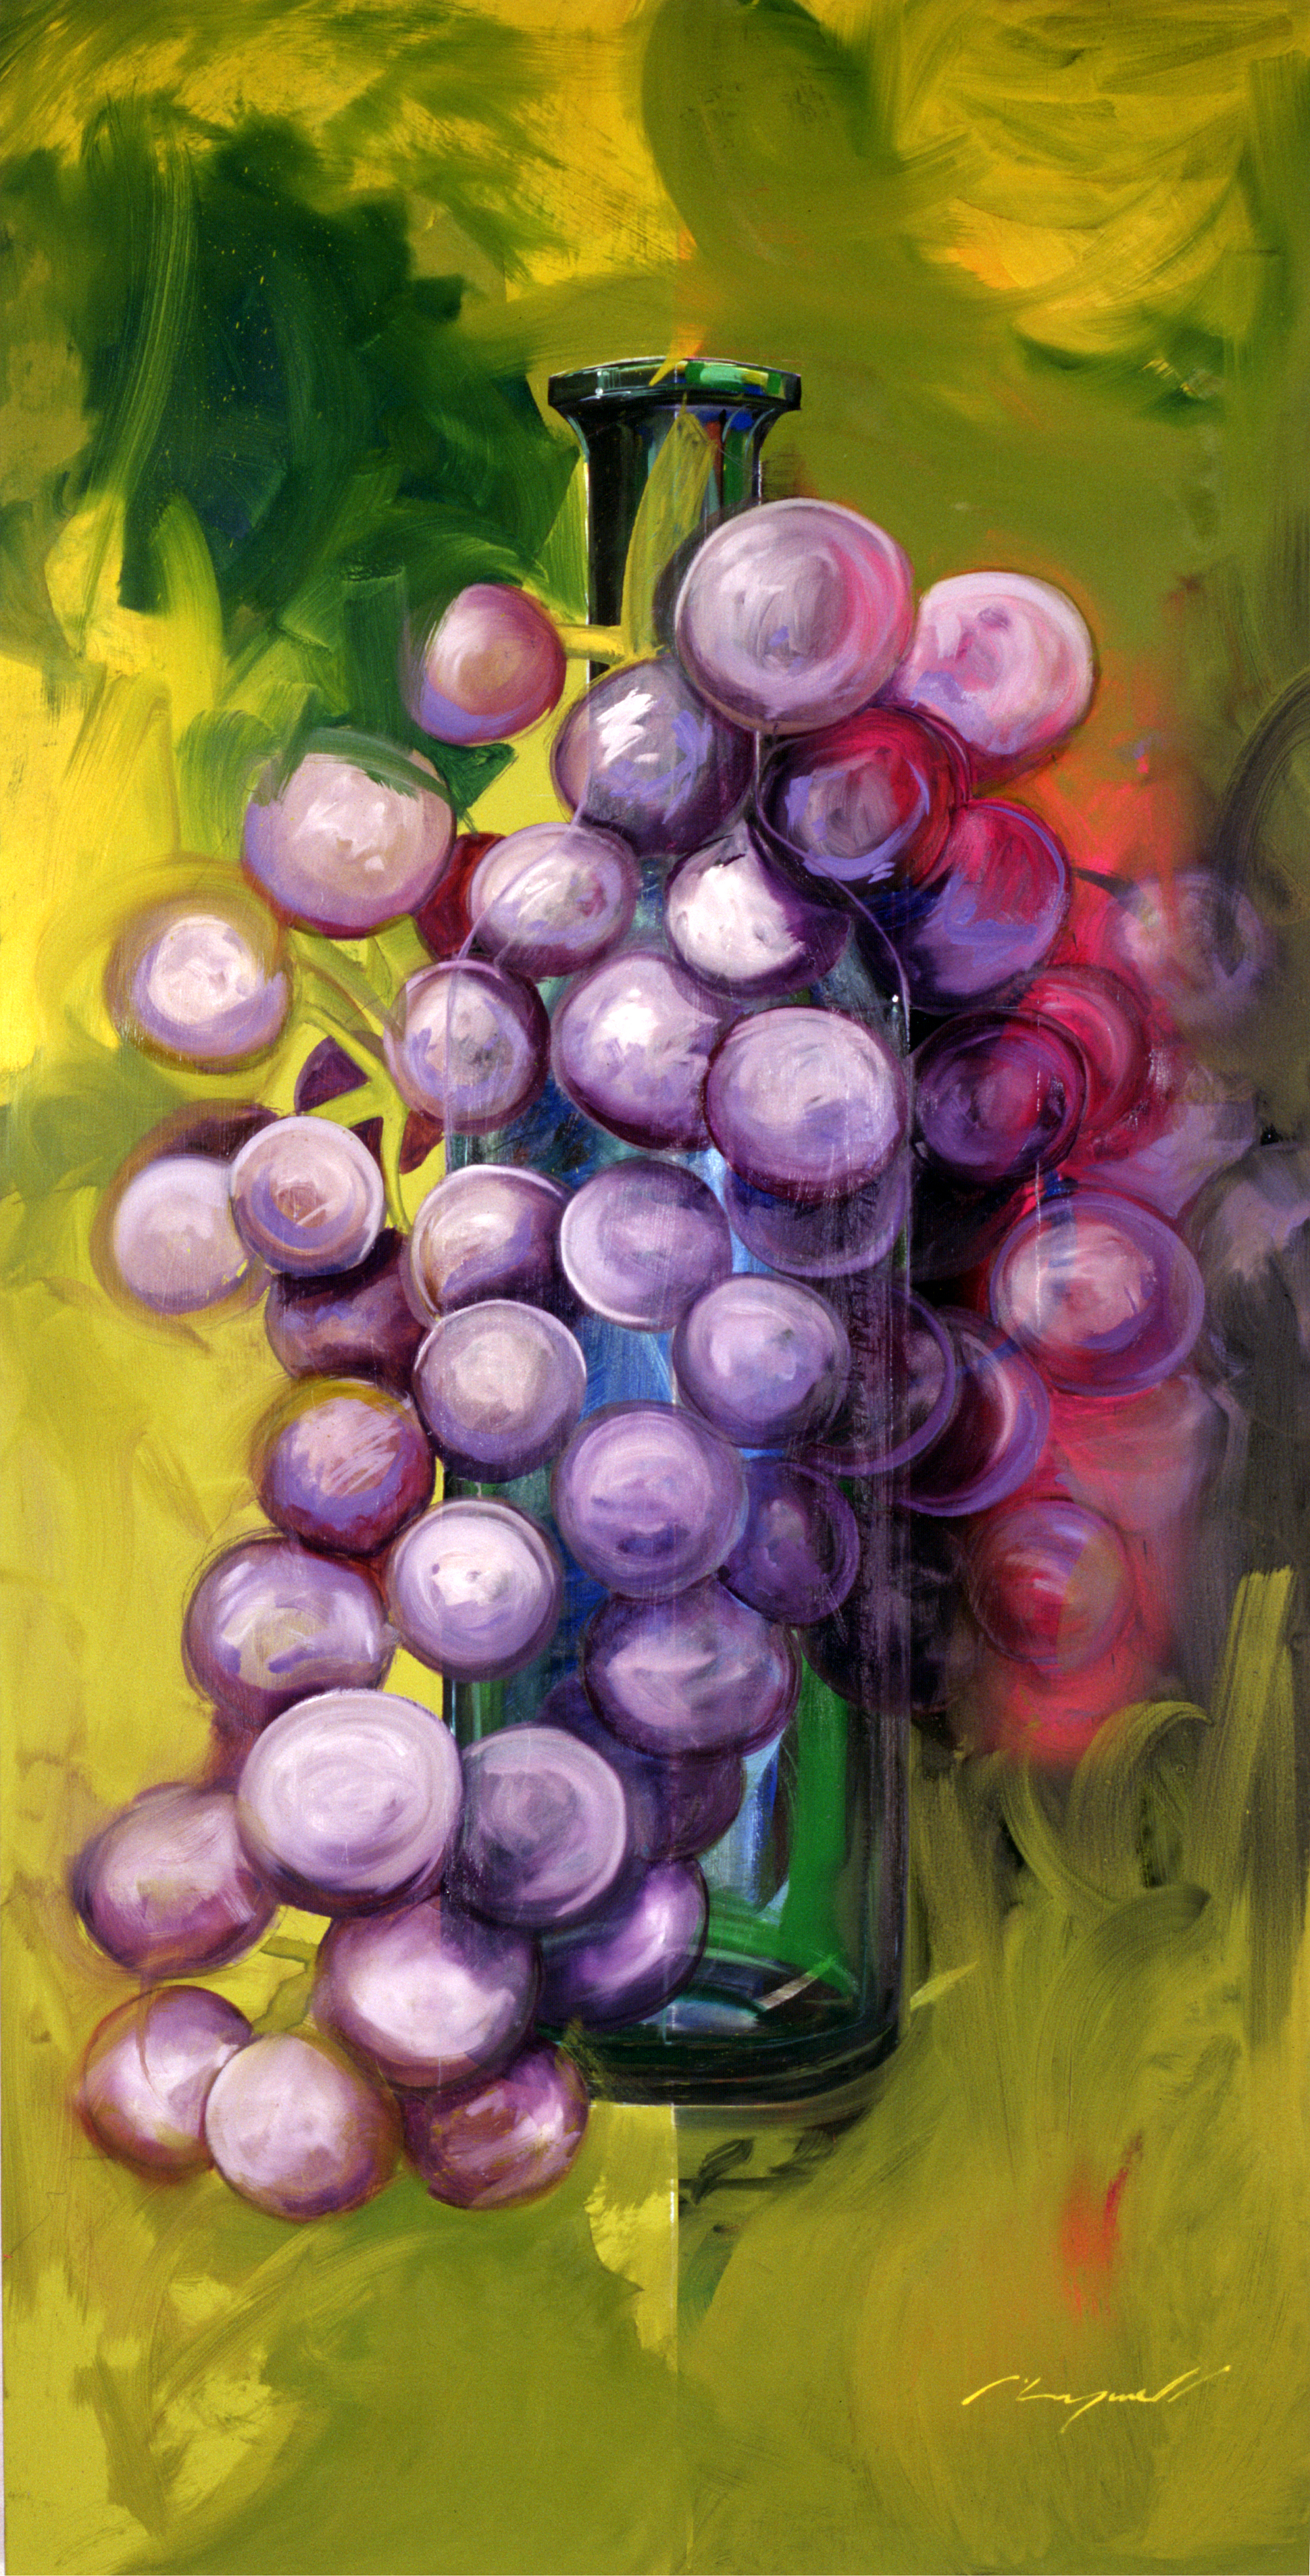 Wine painting is for sale..... currently located in CA. but is big 4' x 8' if you like the original please let me know around 5K